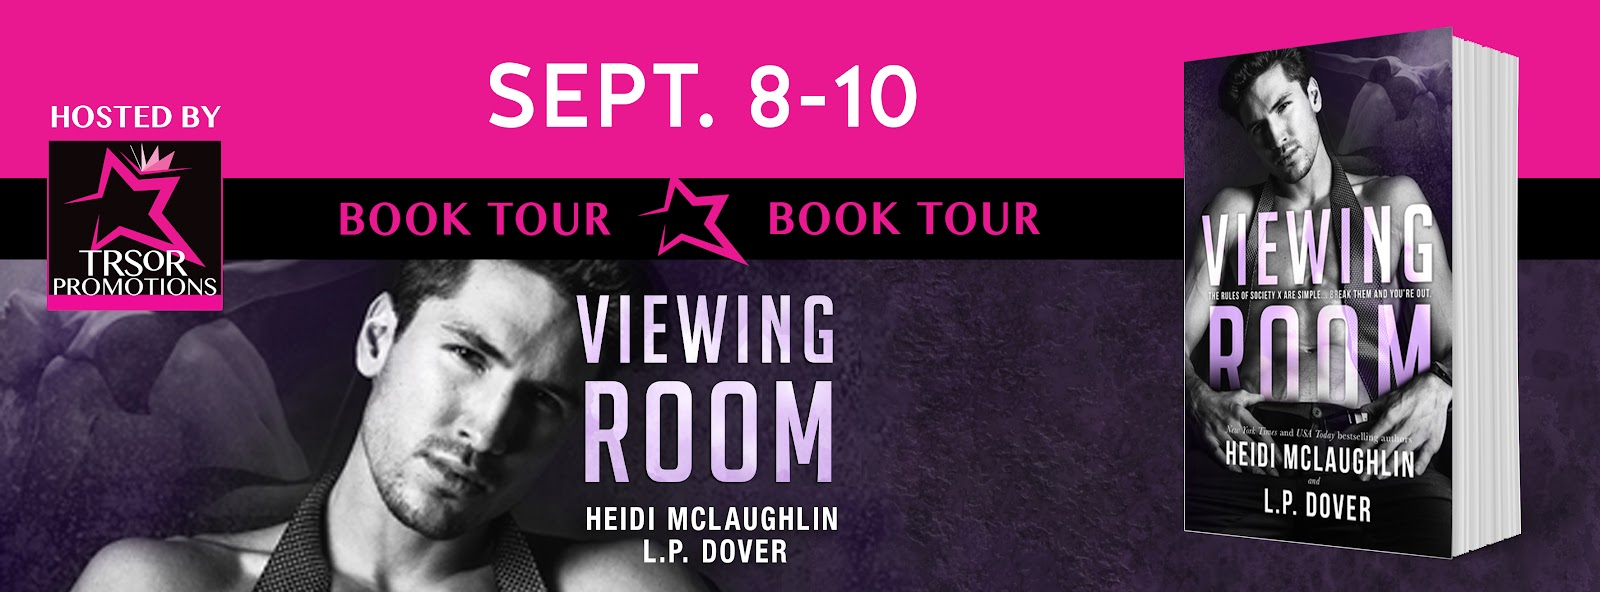 VIEWING_ROOM_BOOK_TOUR.jpg